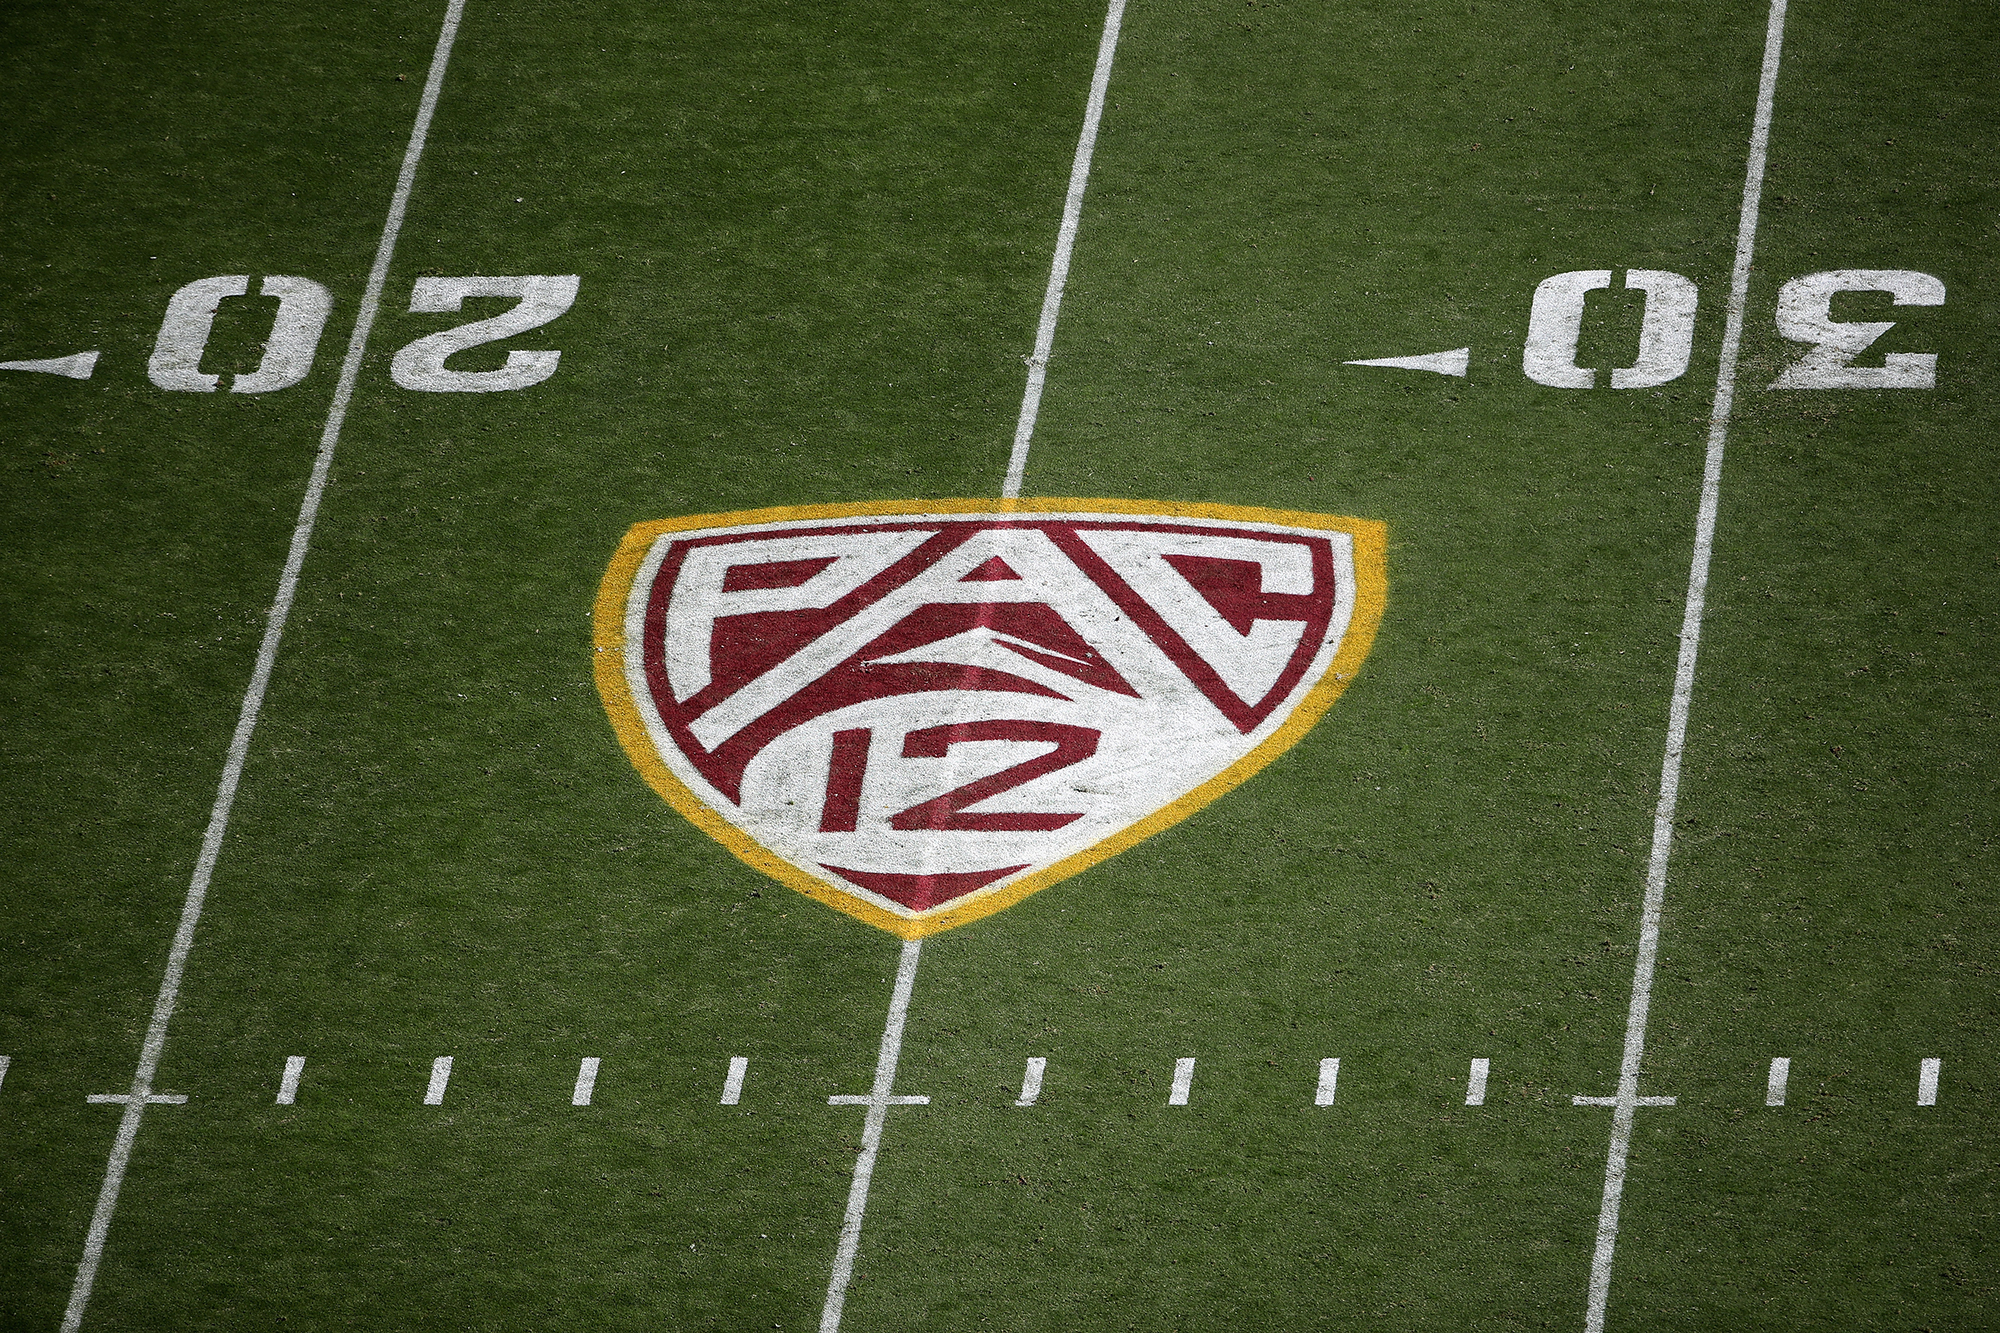 The Pac-12 logo seen on the field during the NCAAF game at Sun Devil Stadium on November 09, 2019 in Tempe, Arizona.